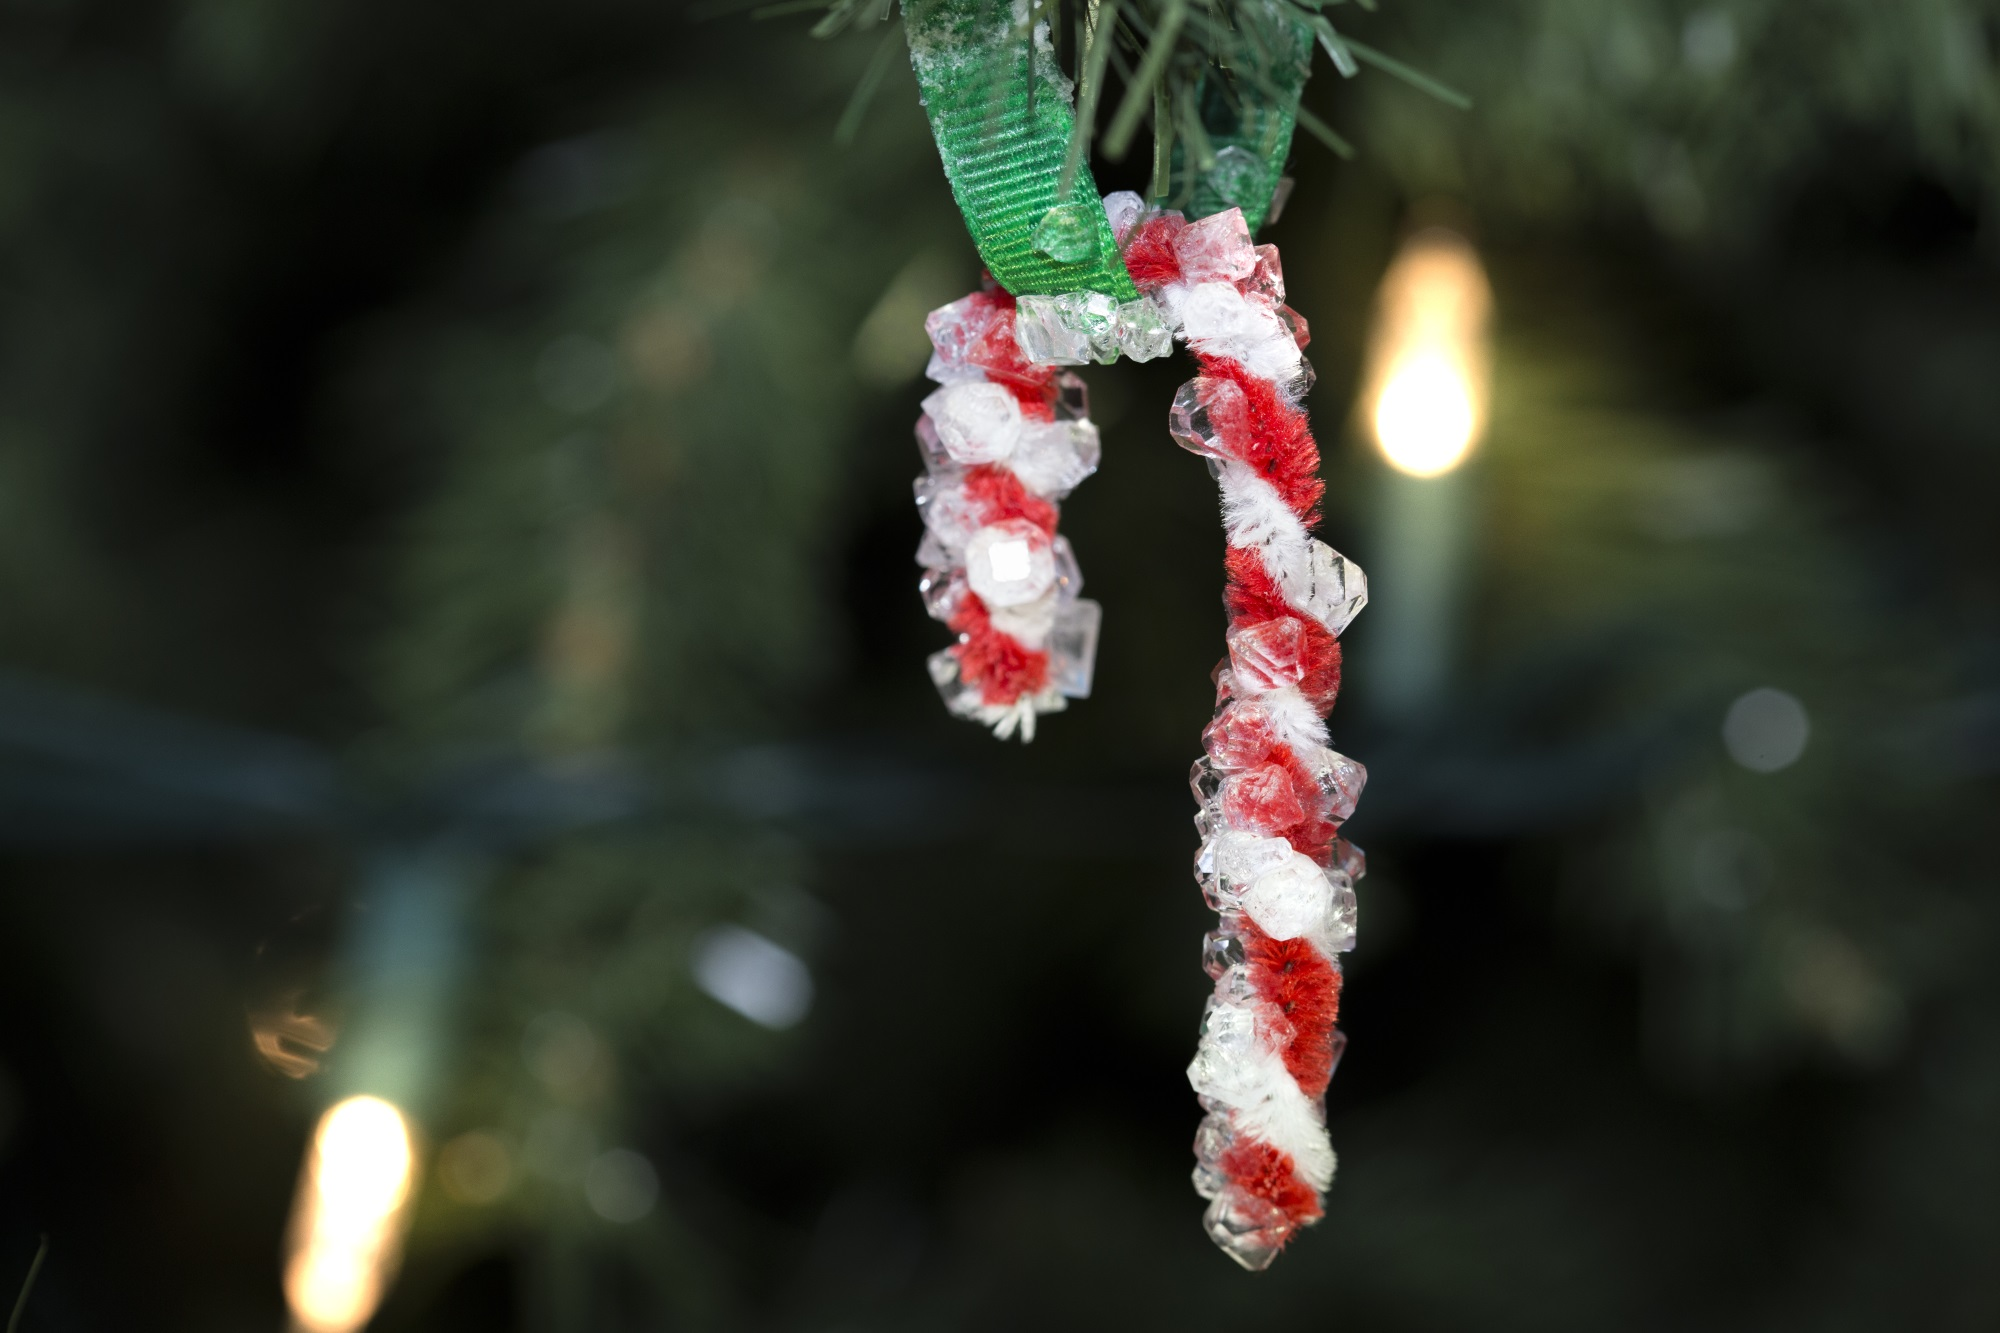 crystal candy cane hanging on a tree